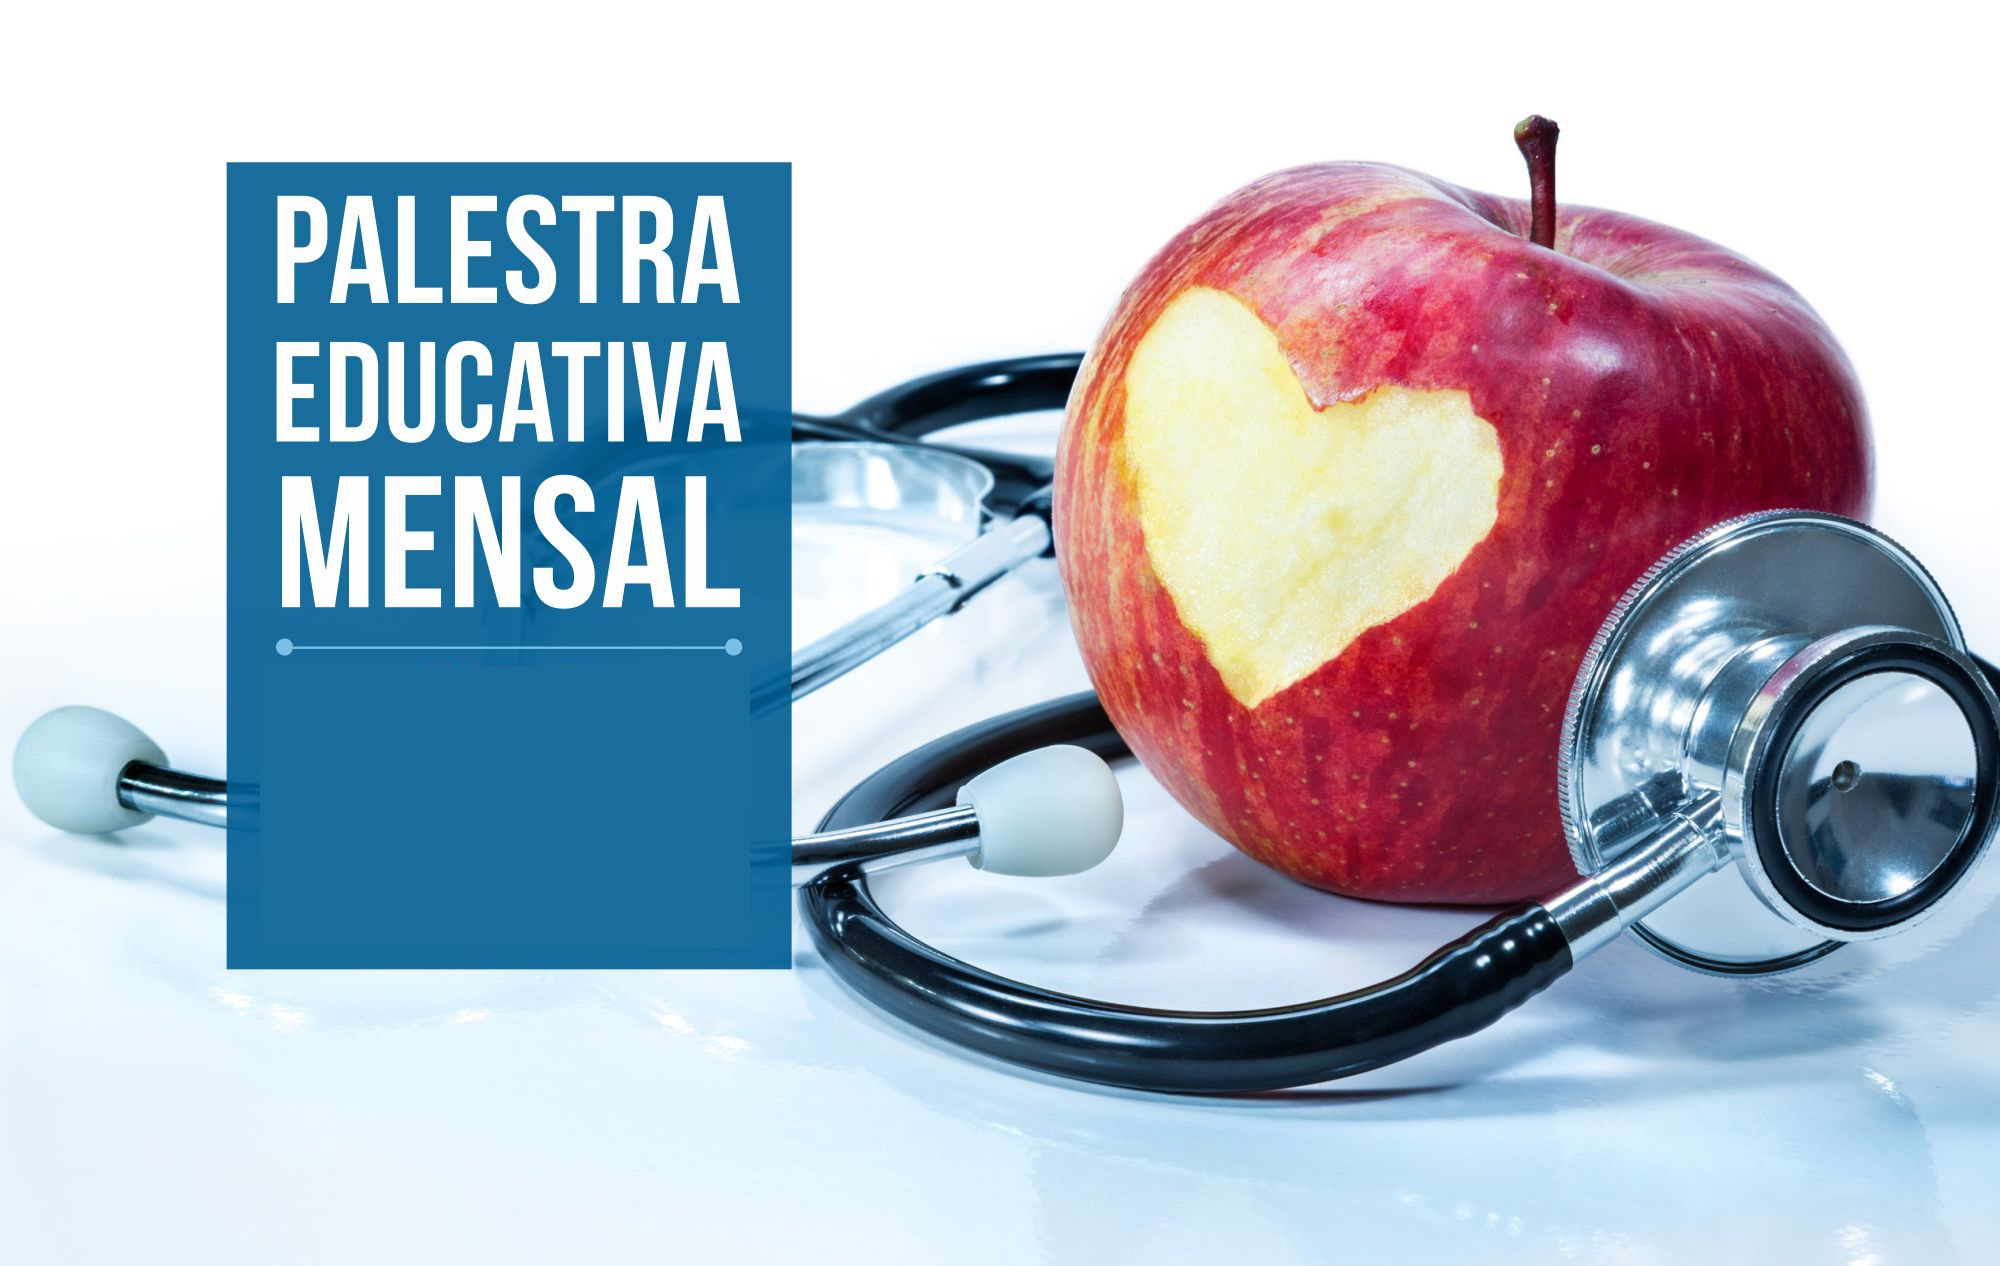 Palestra Educativa Mensal